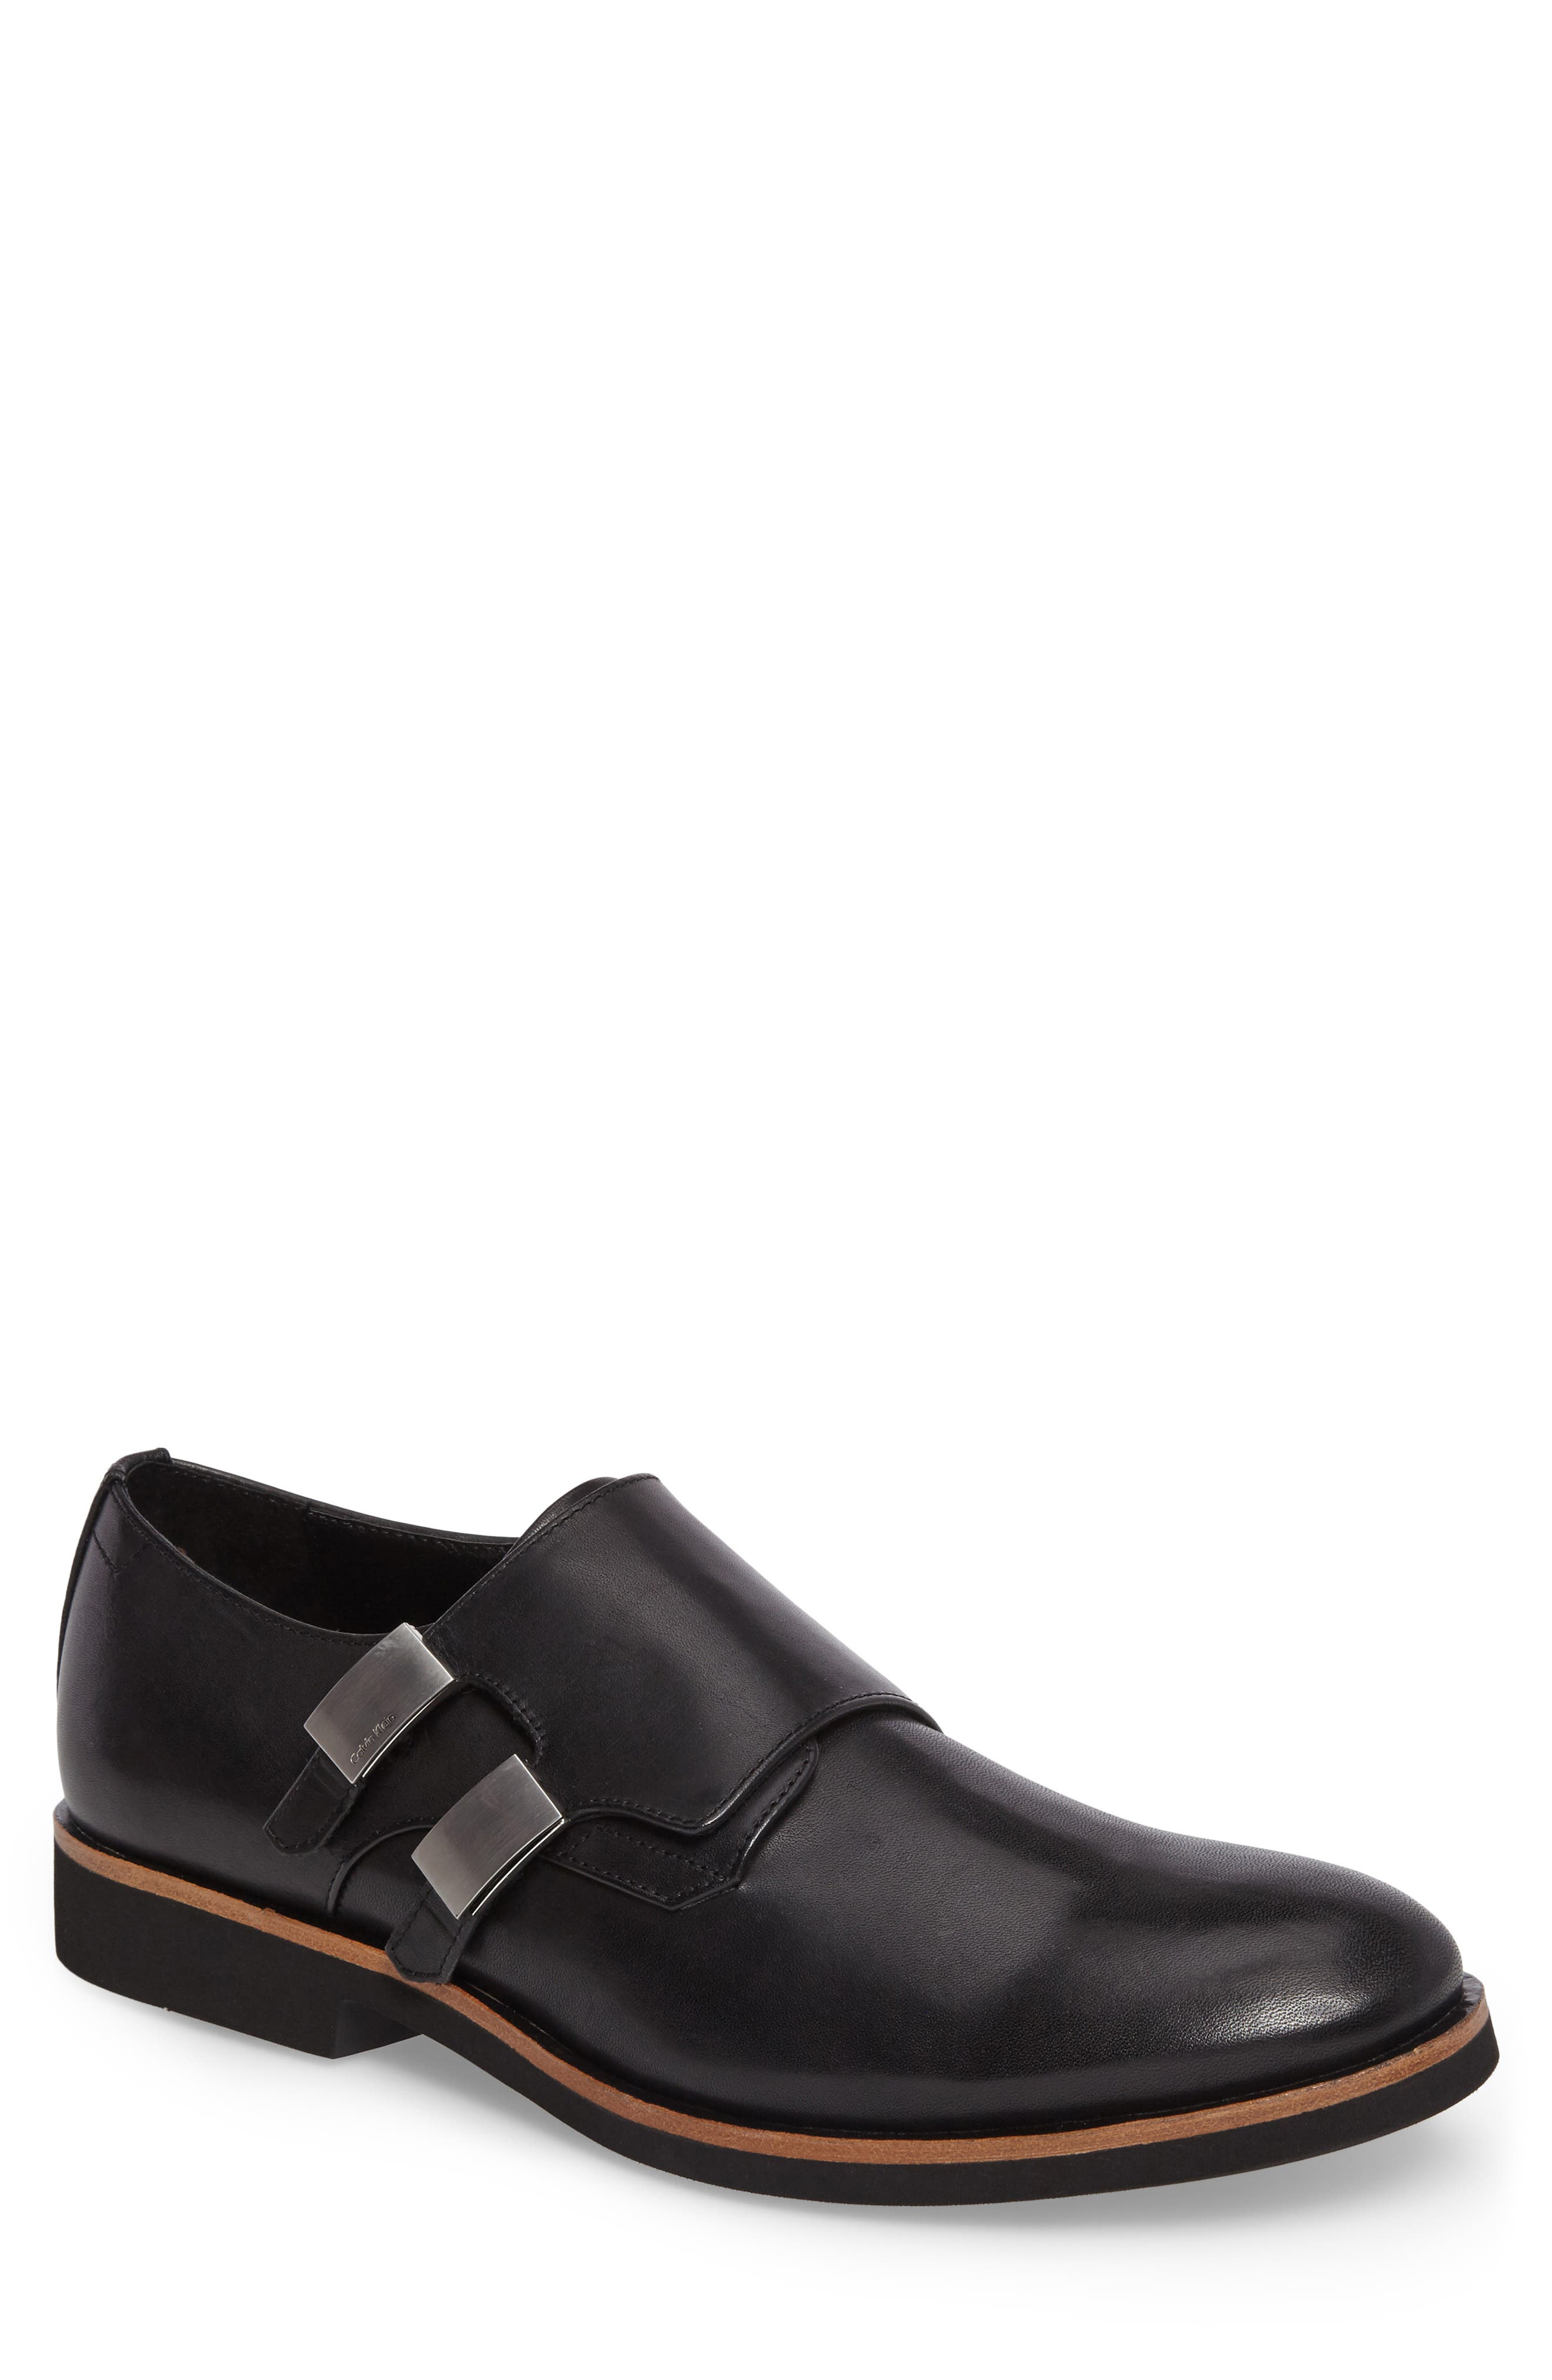 Finnegan Double Monk Strap Shoe,                             Main thumbnail 1, color,